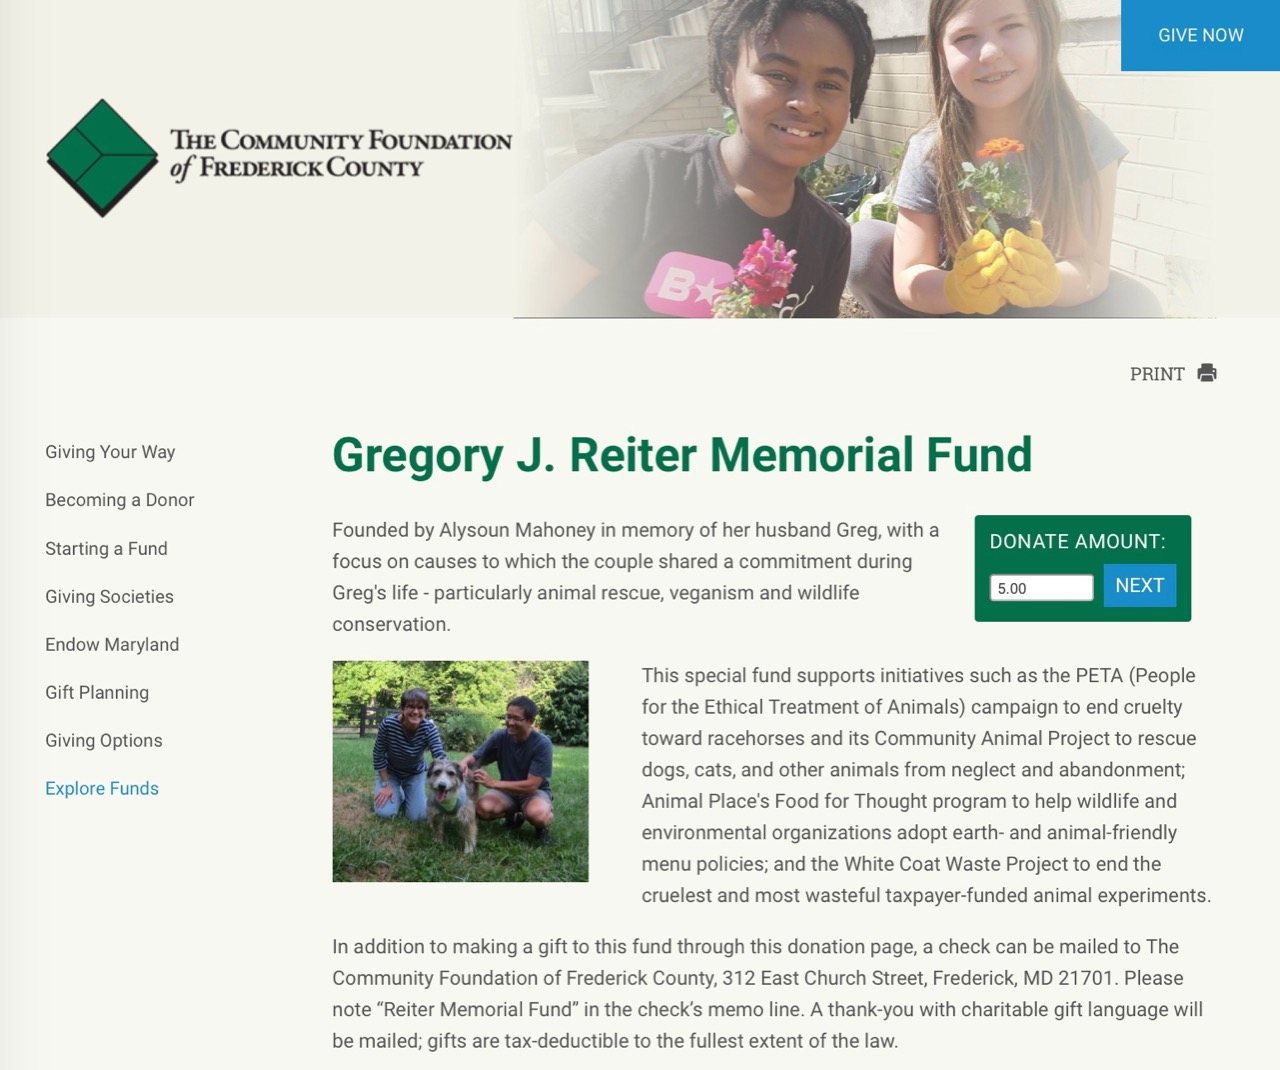 Frederick Community Foundation Donate Page